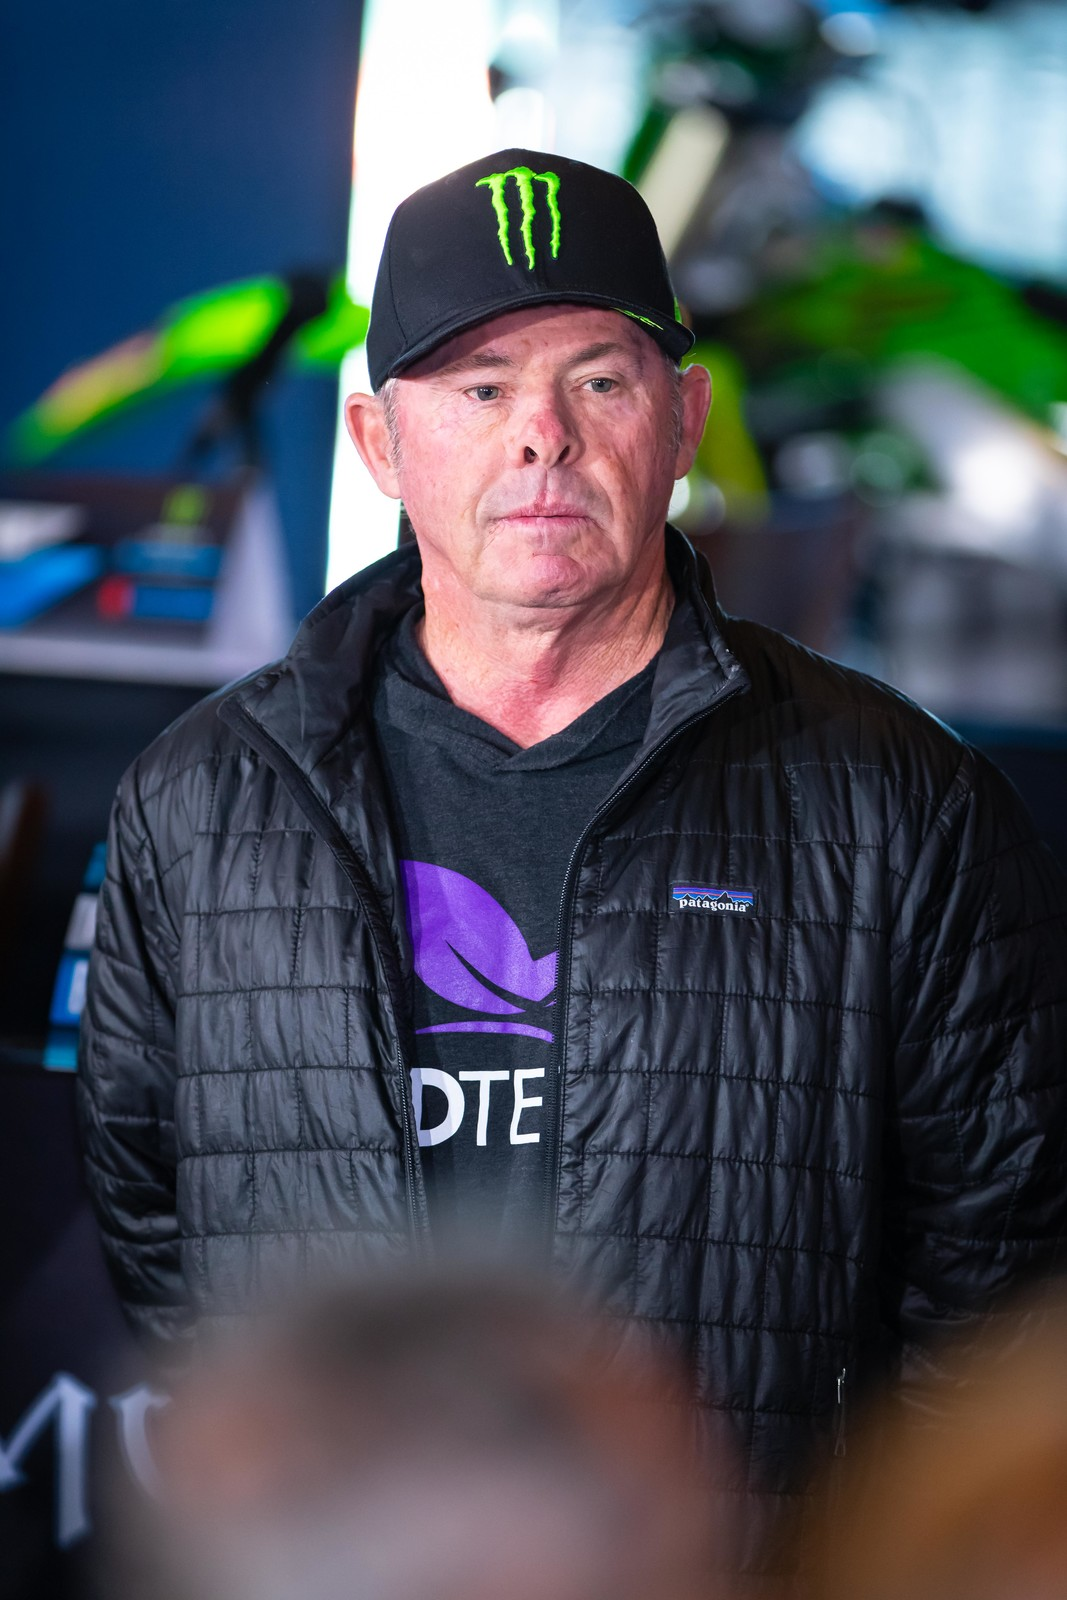 Jeff Ward watches the 2019 Anaheim 1 press conference.